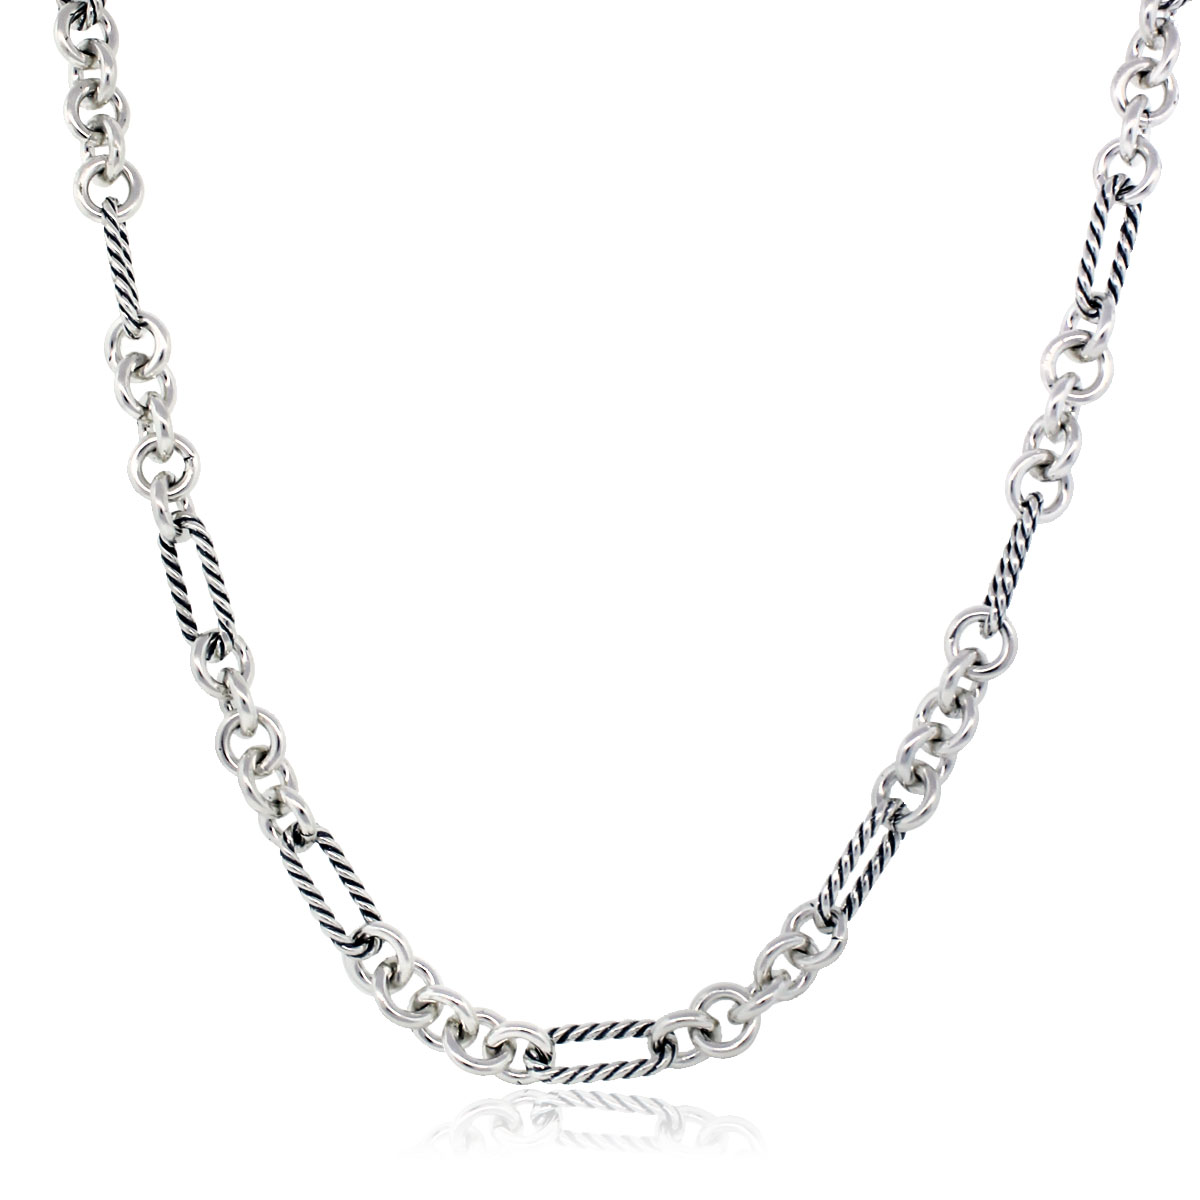 David Yurman Figaro Necklace